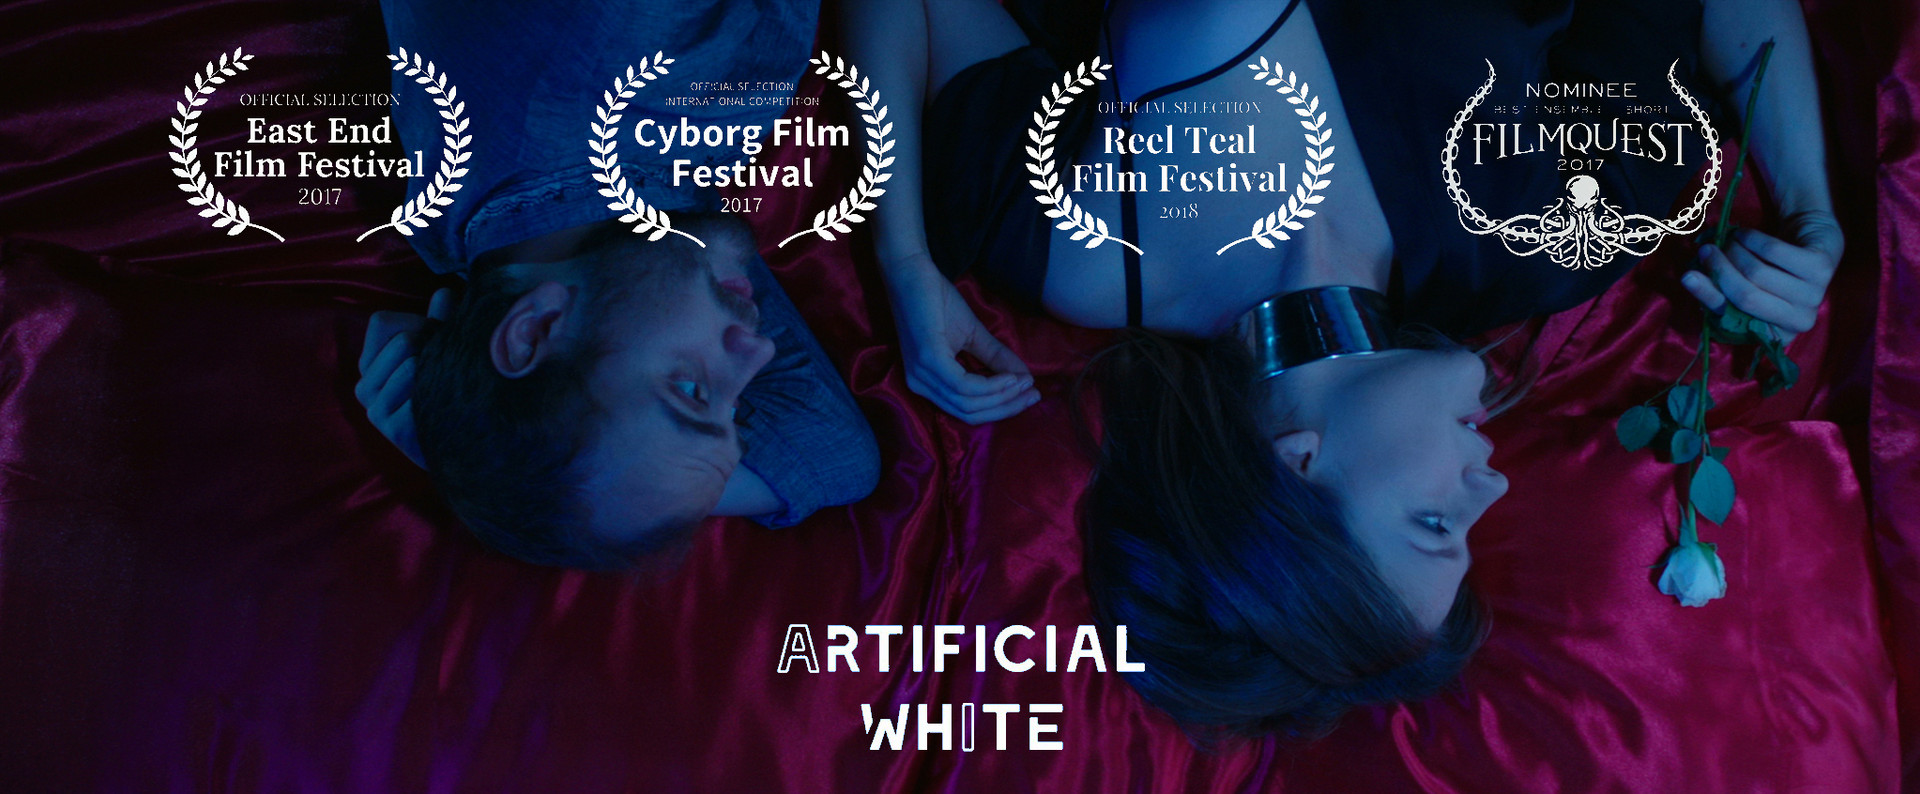 Artificial White (2017)